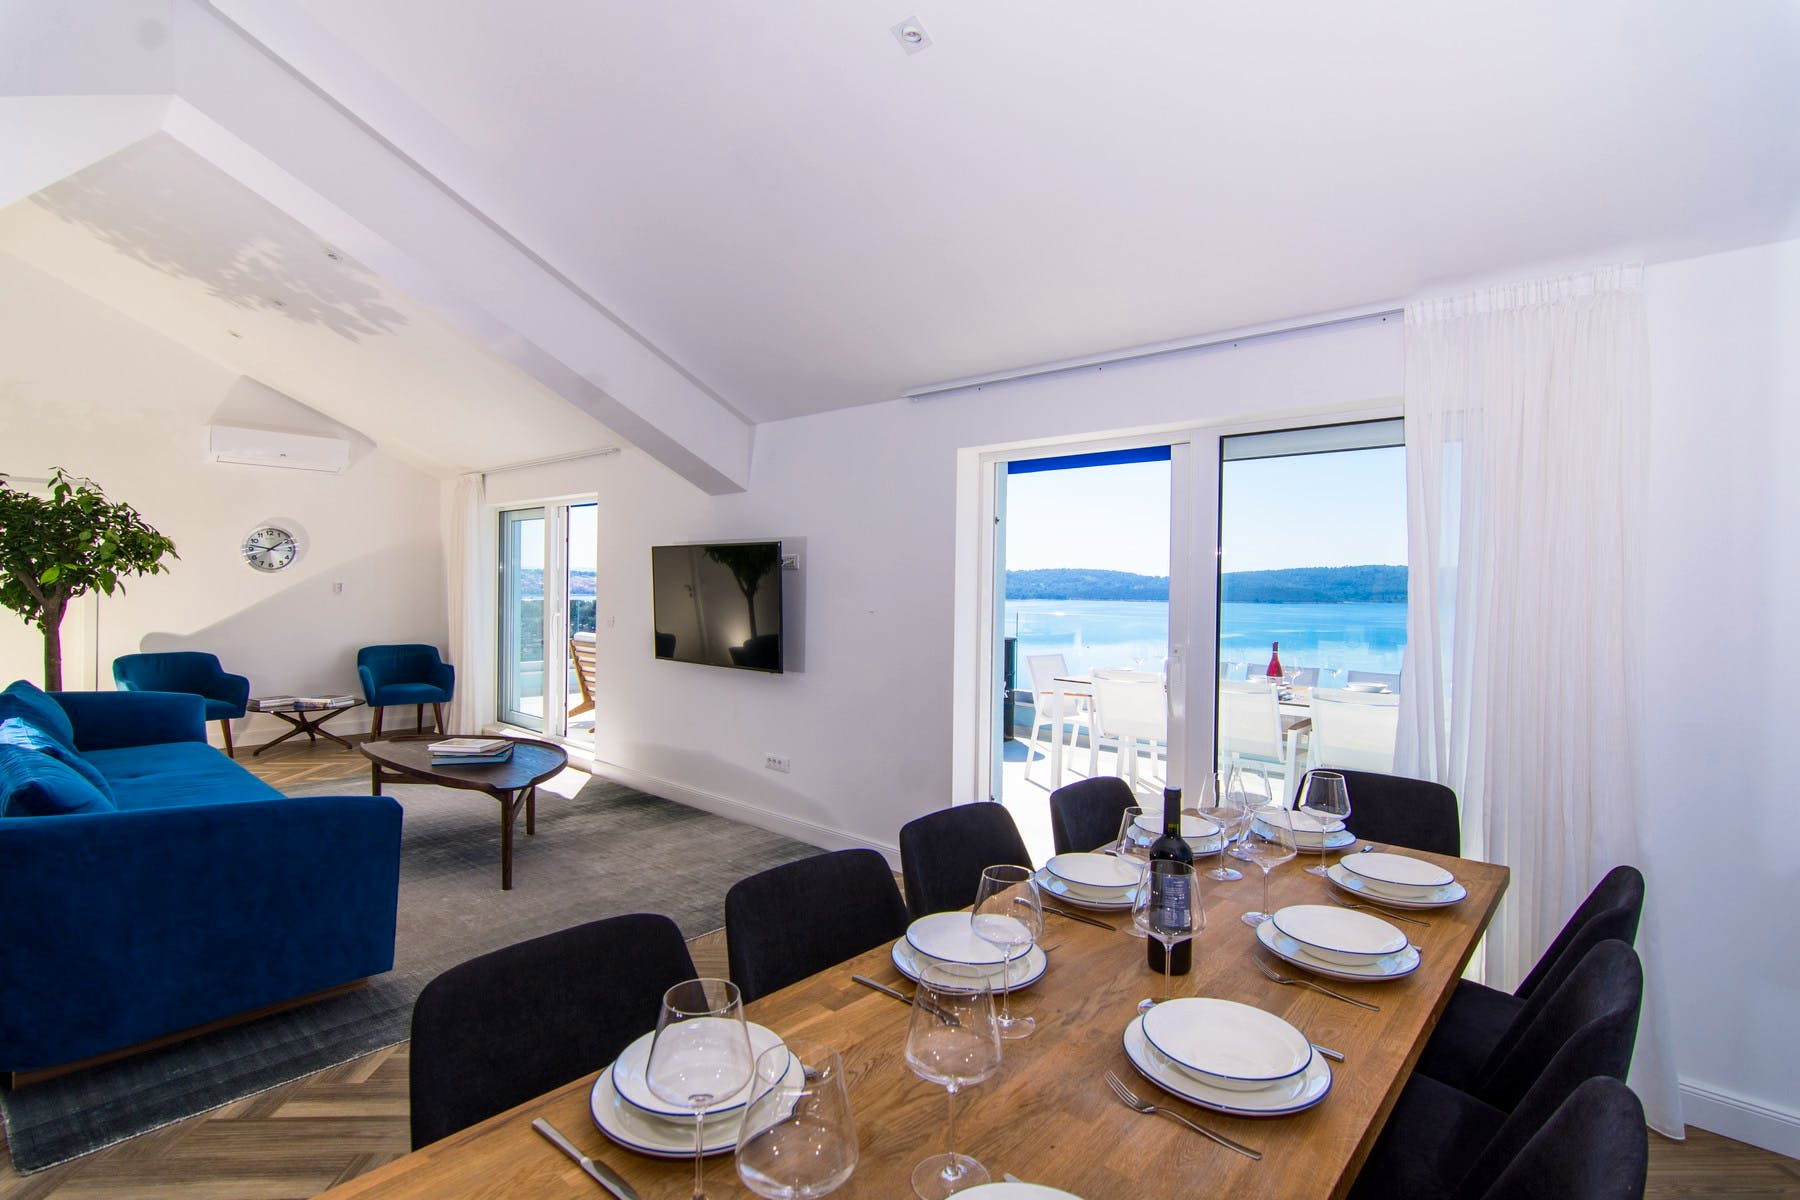 Dining area and living with a sea view